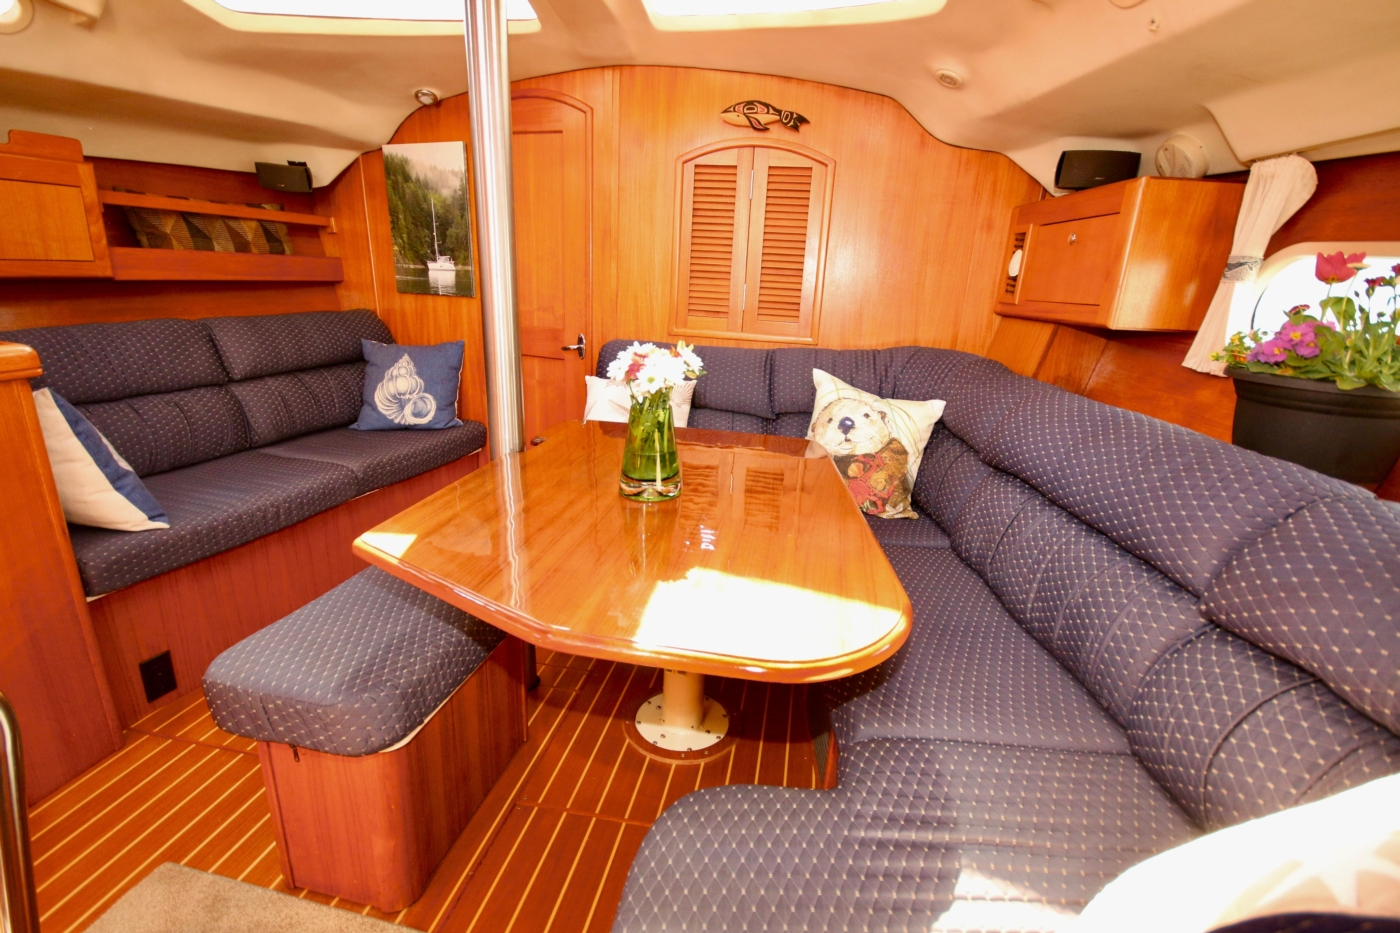 2004 Hunter Passage 420, Looking forward over dining table